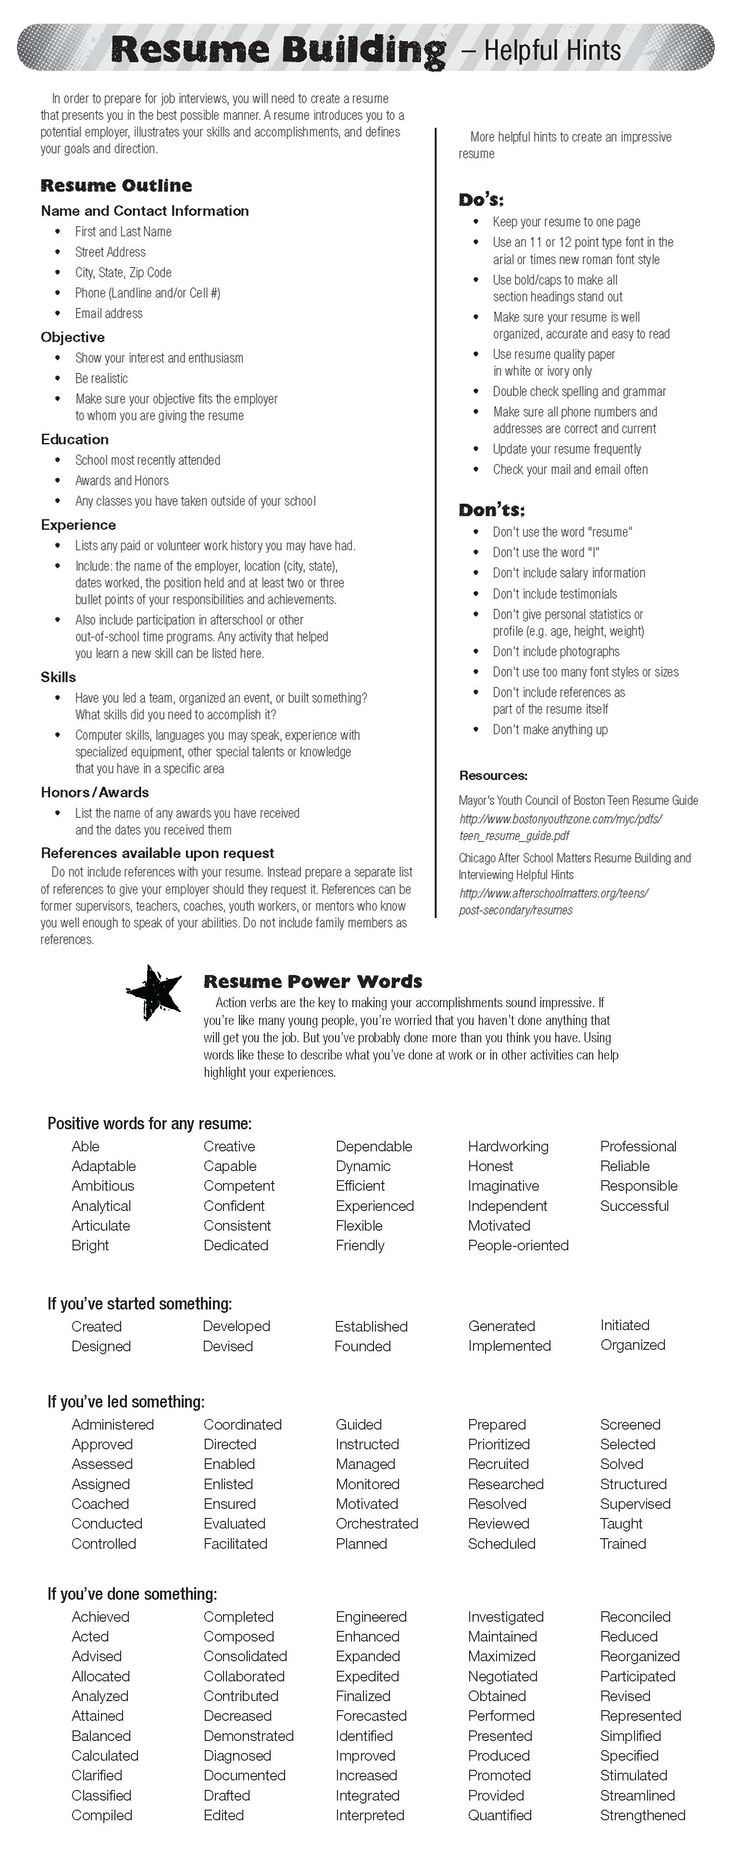 Opposenewapstandardsus  Picturesque  Ideas About Resume On Pinterest  Cv Format Resume Cv And  With Luxury  Ideas About Resume On Pinterest  Cv Format Resume Cv And Resume Templates With Astonishing Resume Writing Professional Also Teacher Resume Template Free In Addition Business Resume Templates And Entry Level Office Assistant Resume As Well As List Of Hard Skills For Resume Additionally Sample Resume Education From Pinterestcom With Opposenewapstandardsus  Luxury  Ideas About Resume On Pinterest  Cv Format Resume Cv And  With Astonishing  Ideas About Resume On Pinterest  Cv Format Resume Cv And Resume Templates And Picturesque Resume Writing Professional Also Teacher Resume Template Free In Addition Business Resume Templates From Pinterestcom